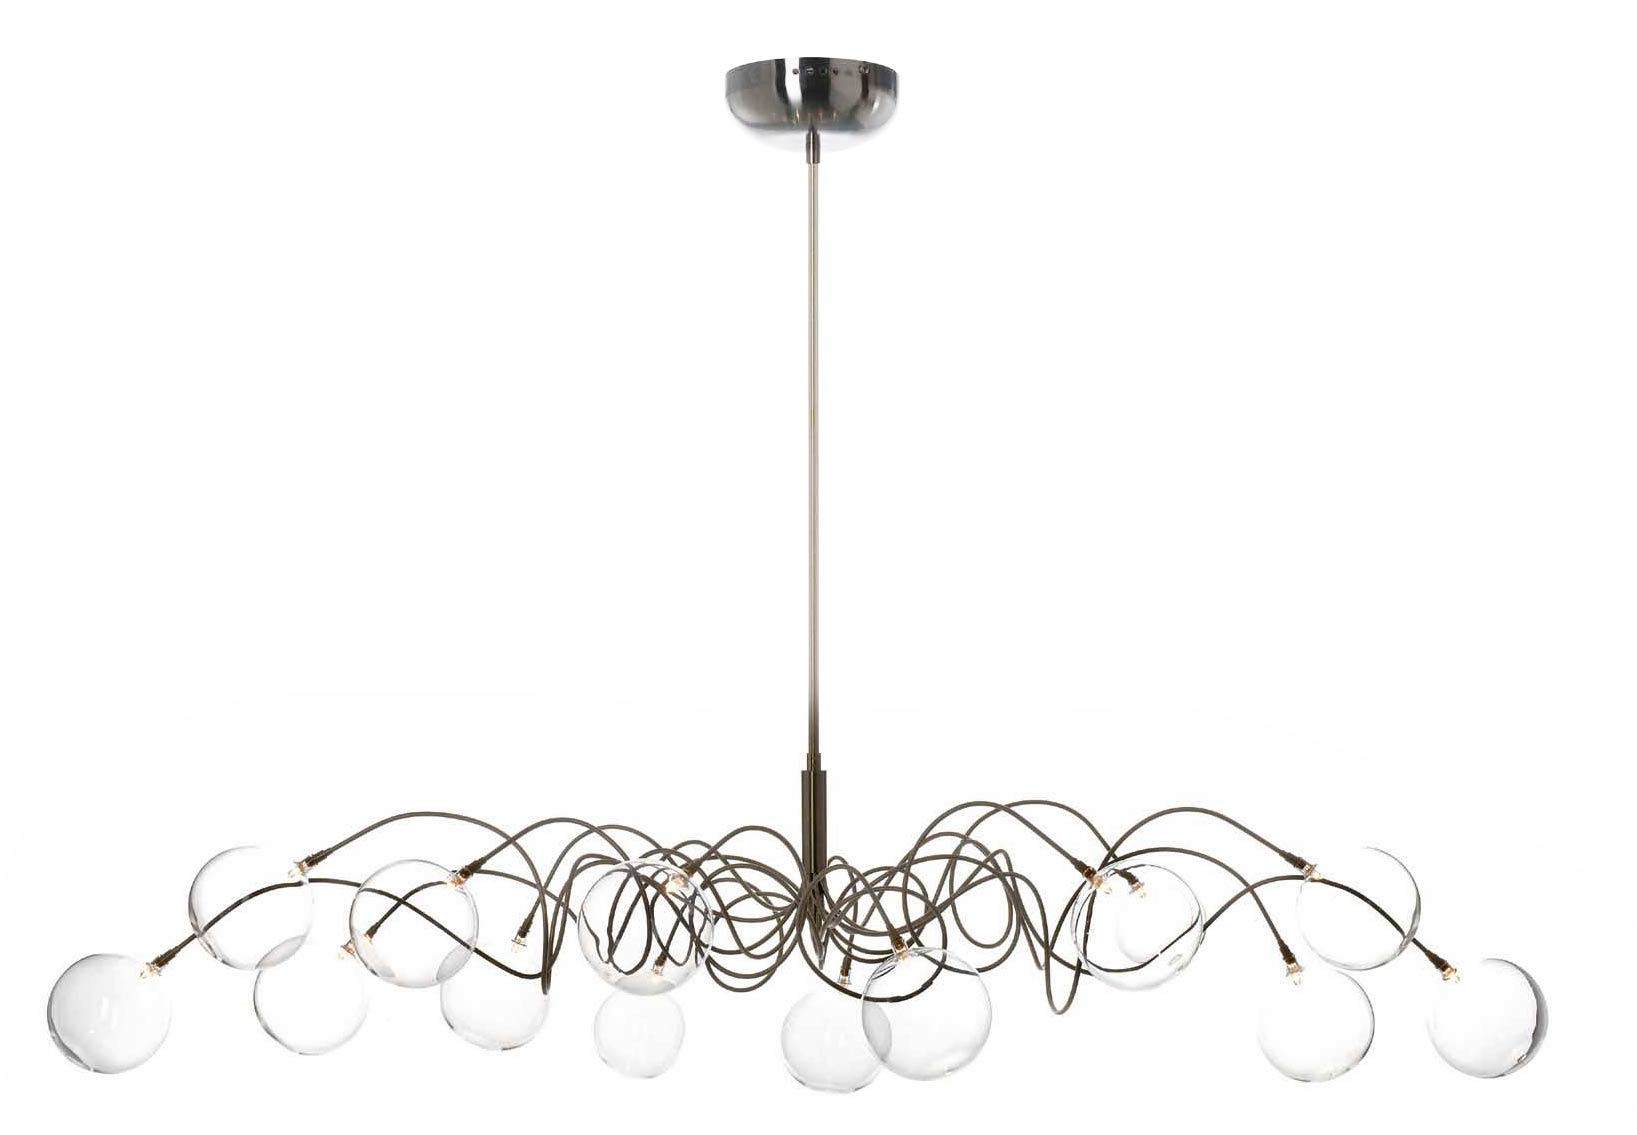 Big Bubbles 14-light oval glass ball chandelier. Harco Loor.